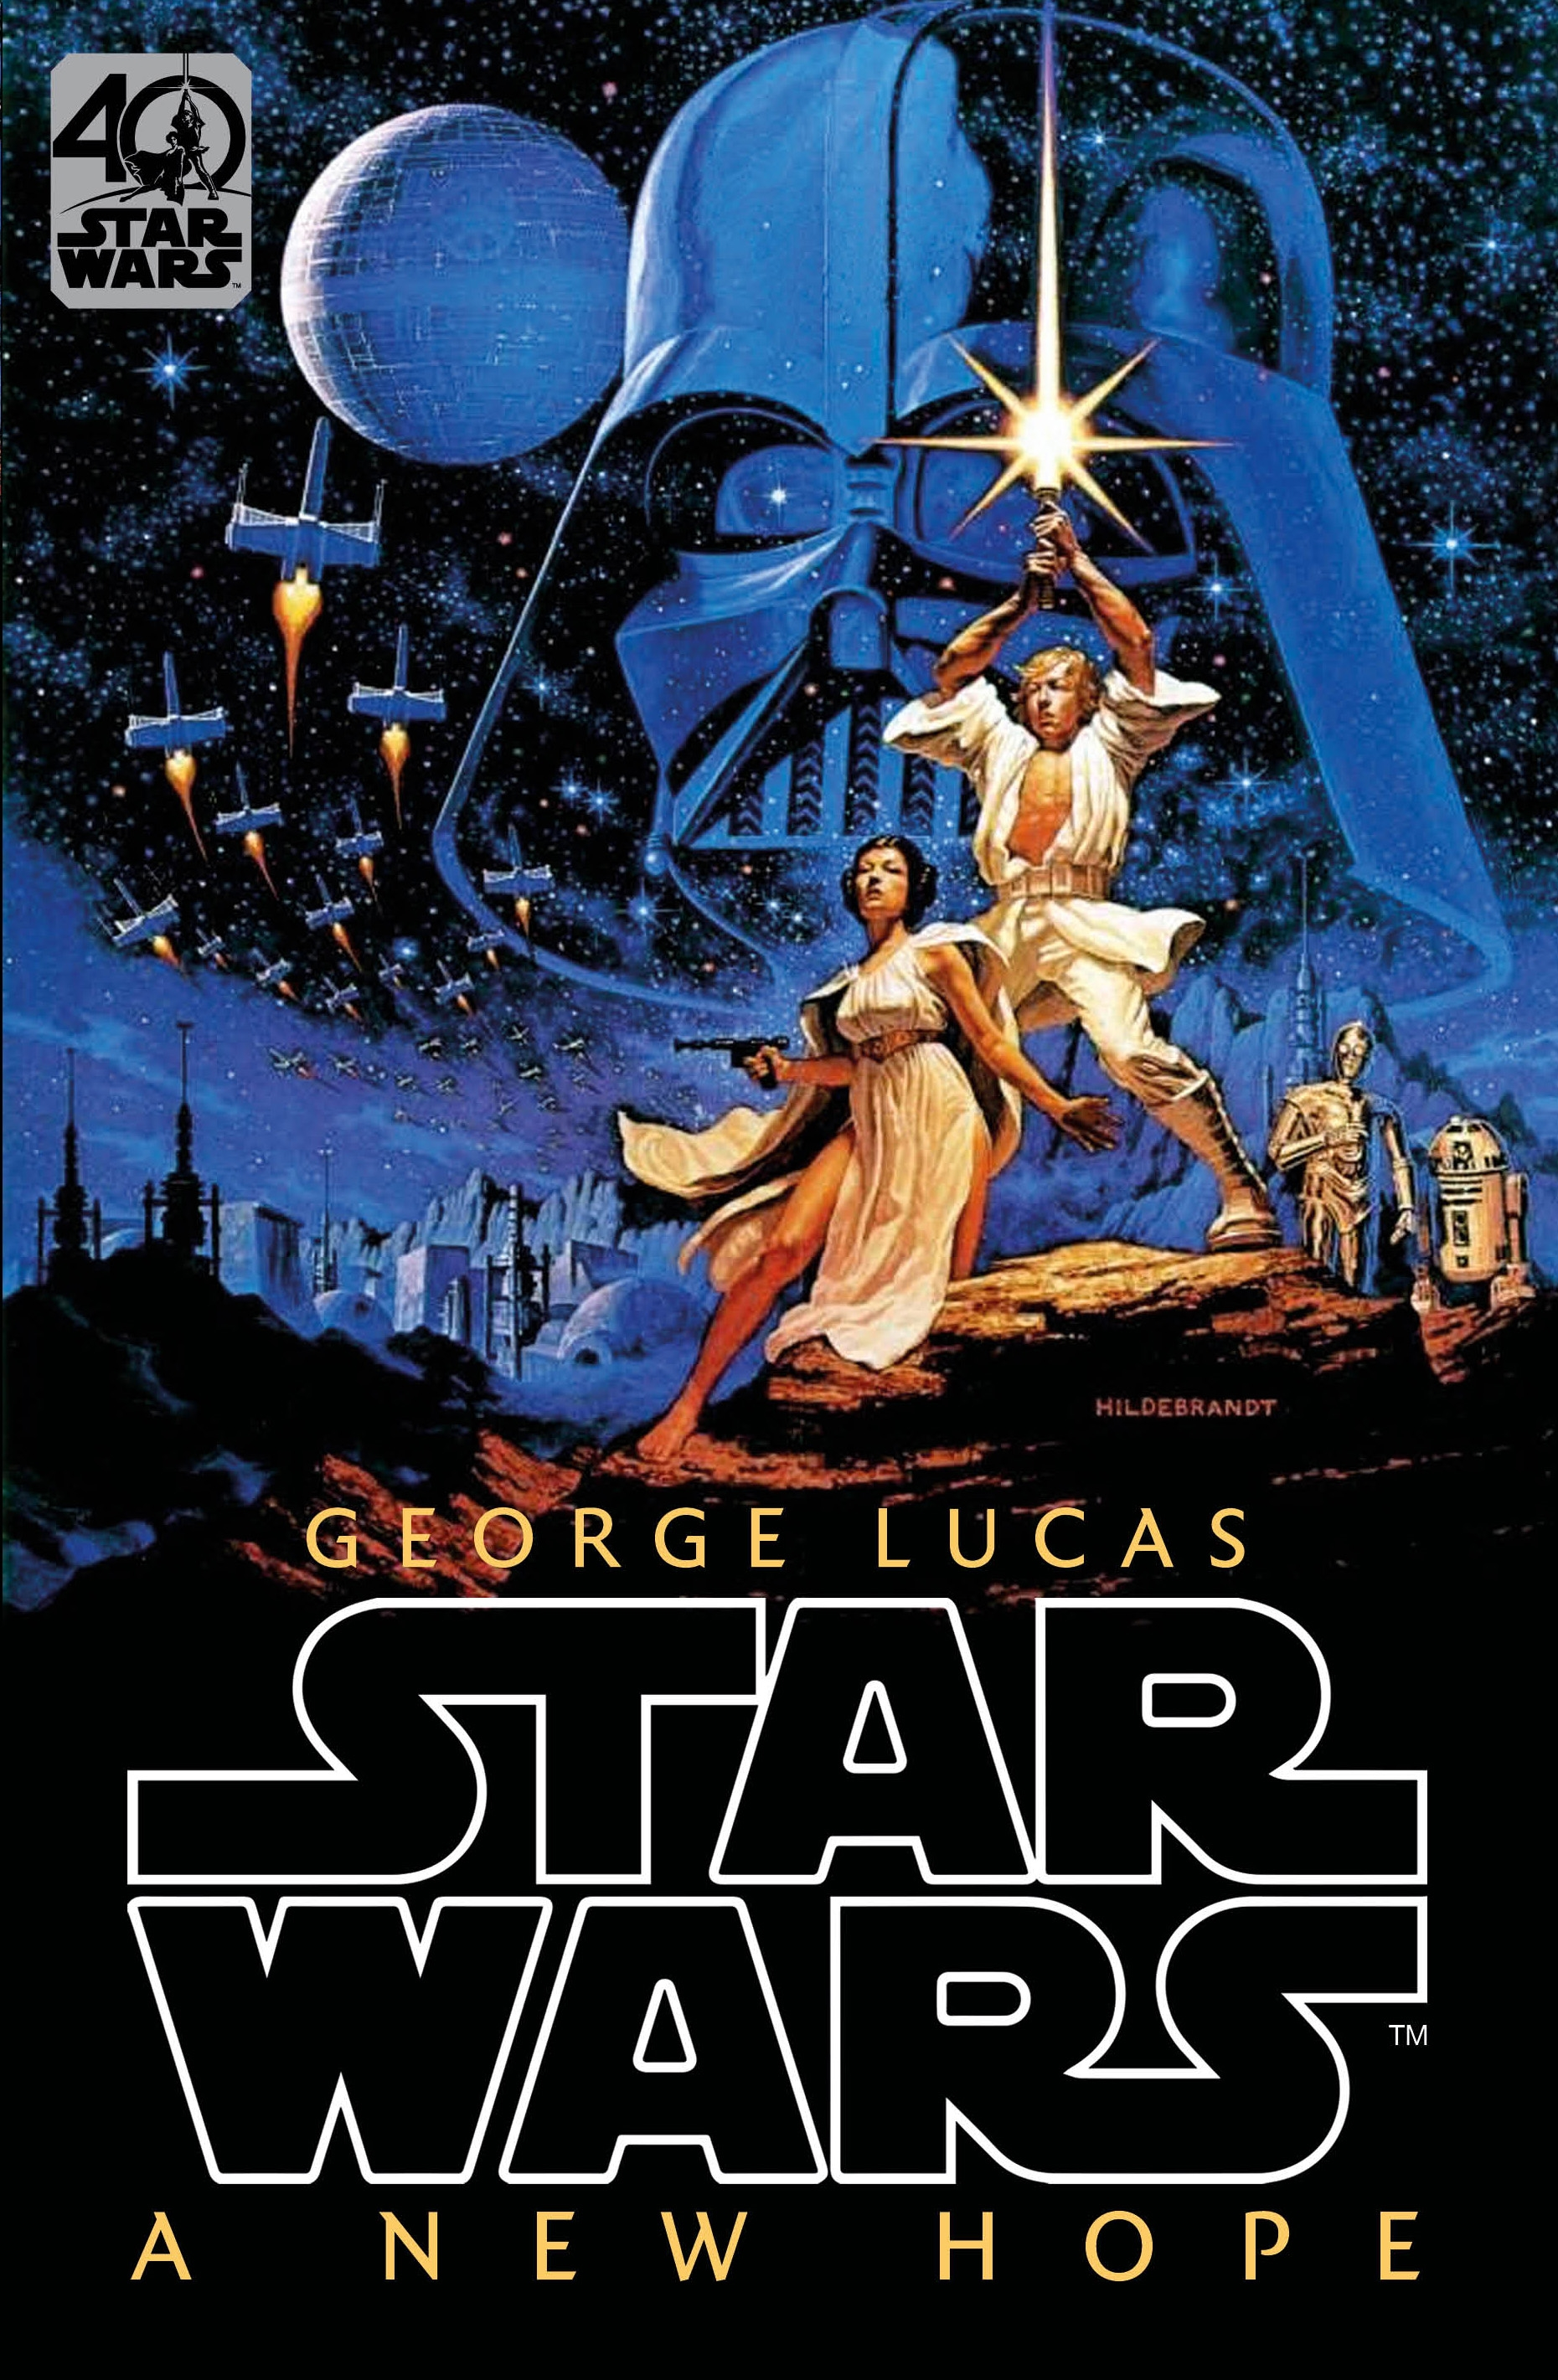 Star Wars: Episode IV: A New Hope. Official 40th Anniversary Collector's  Edition. By George Lucas